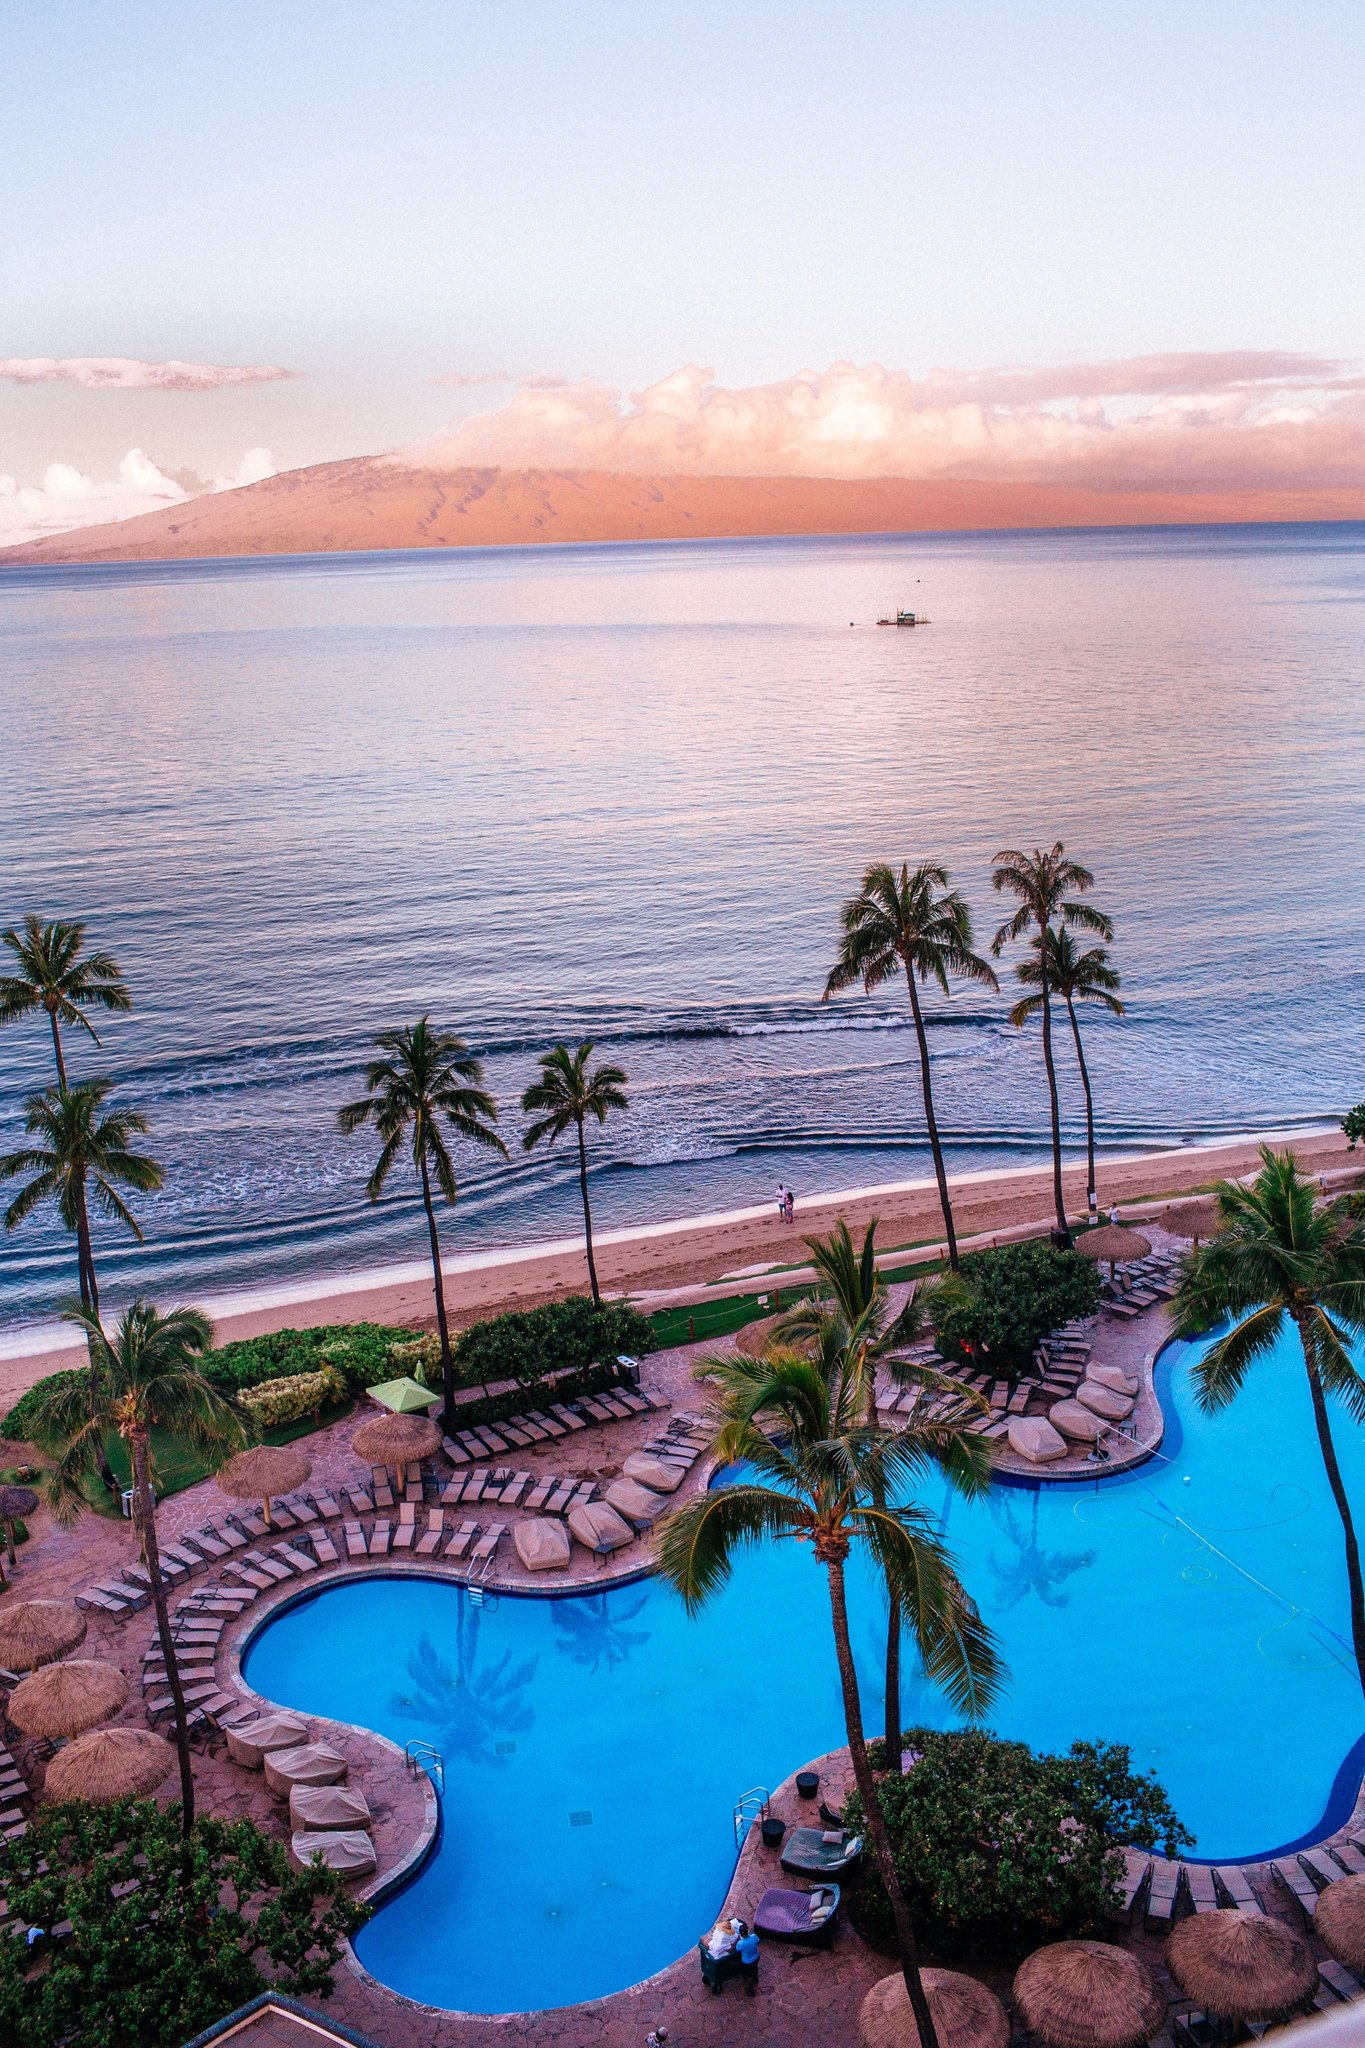 The pool and ocean at the Hyatt Maui from a Ocean view room